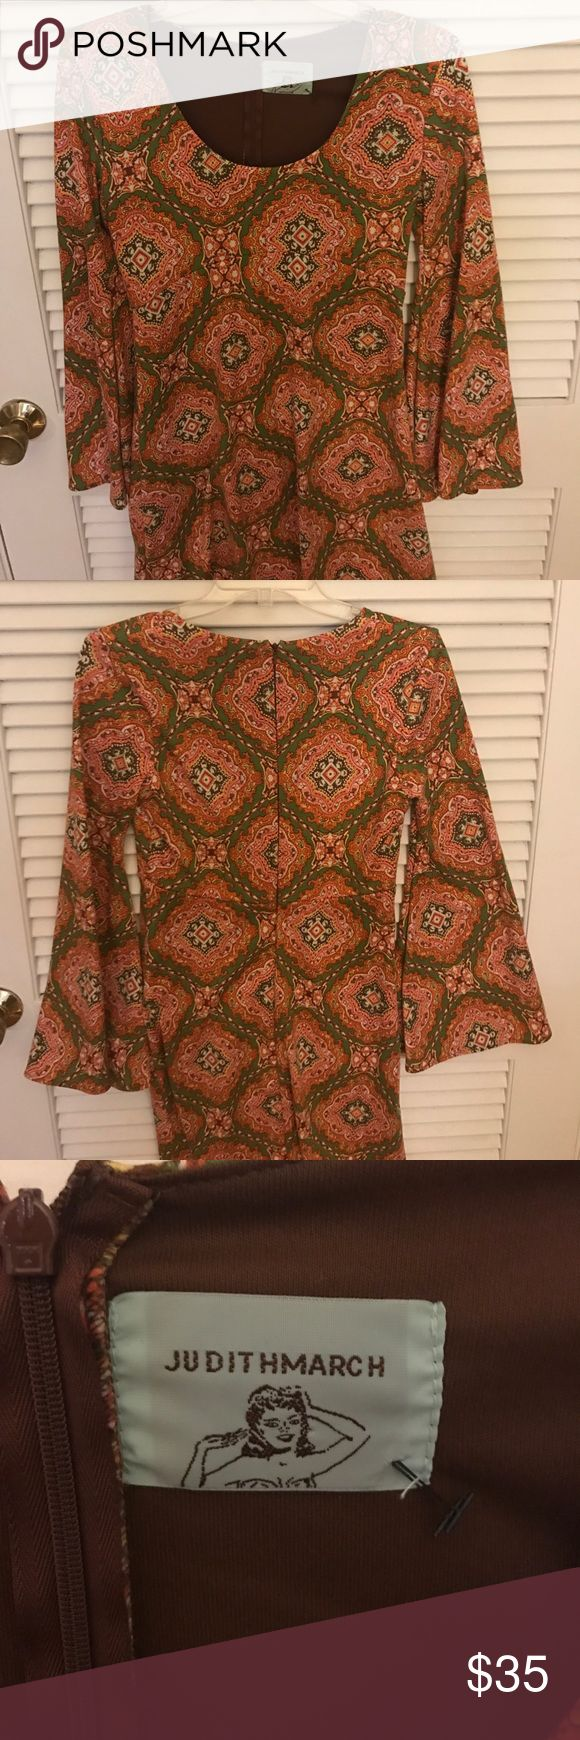 Judith March  dress Brown Green and Orange size small bohemian printed Judith March dress. Long Sleeve dress with bell sleeves. Good quality material, perfect for cool temperatures (like fall and winter in the south), maybe all year in other areas!  Very cute dress can be paired with boots or heels! Judith March Dresses Long Sleeve